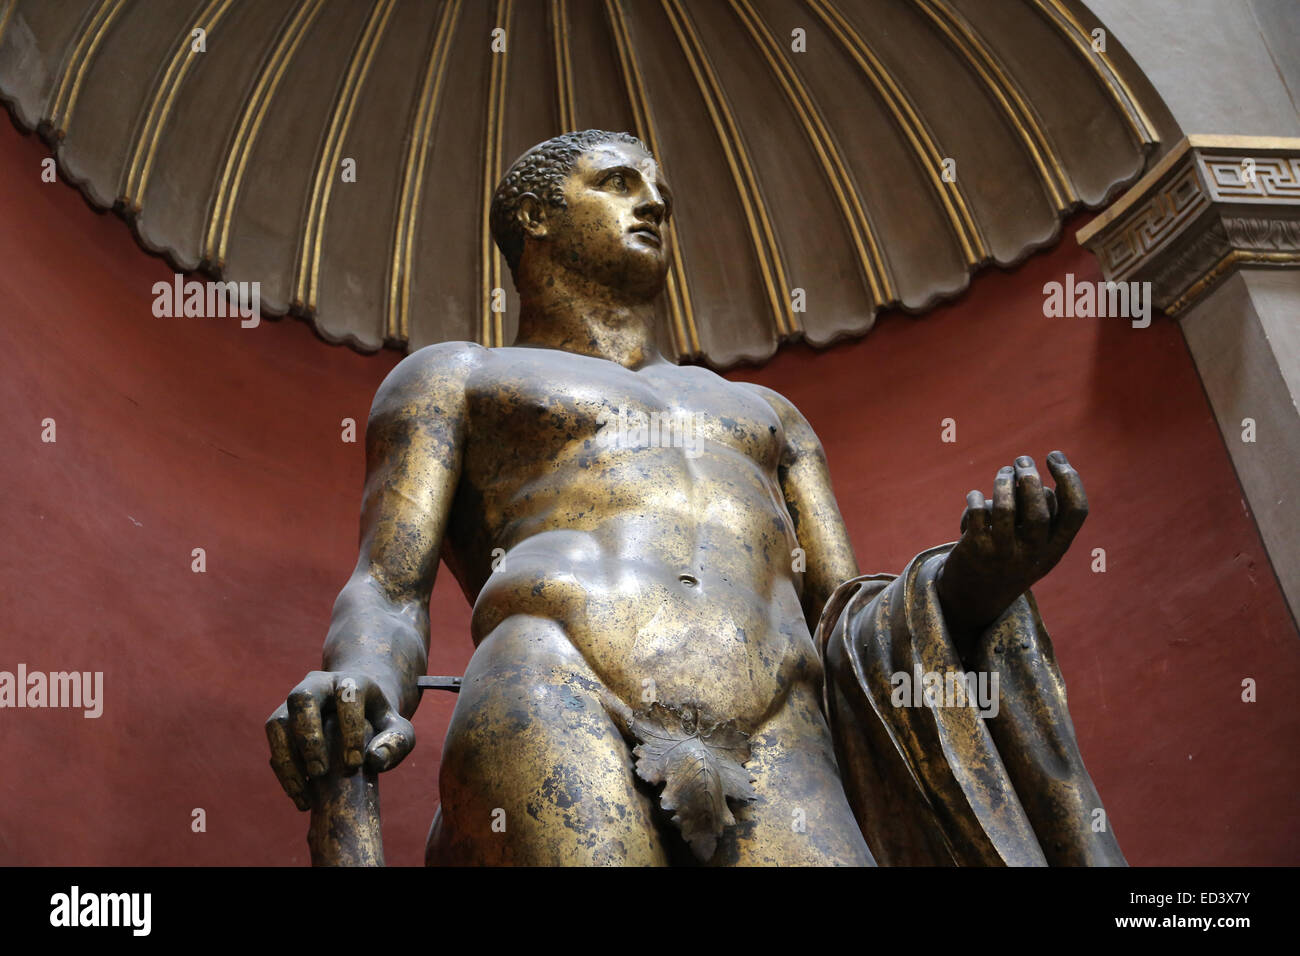 Roman art. Heracles. Gilded statue. From the theatre of Pompey. 2nd century. Vatican Museums. Vatican city. - Stock Image